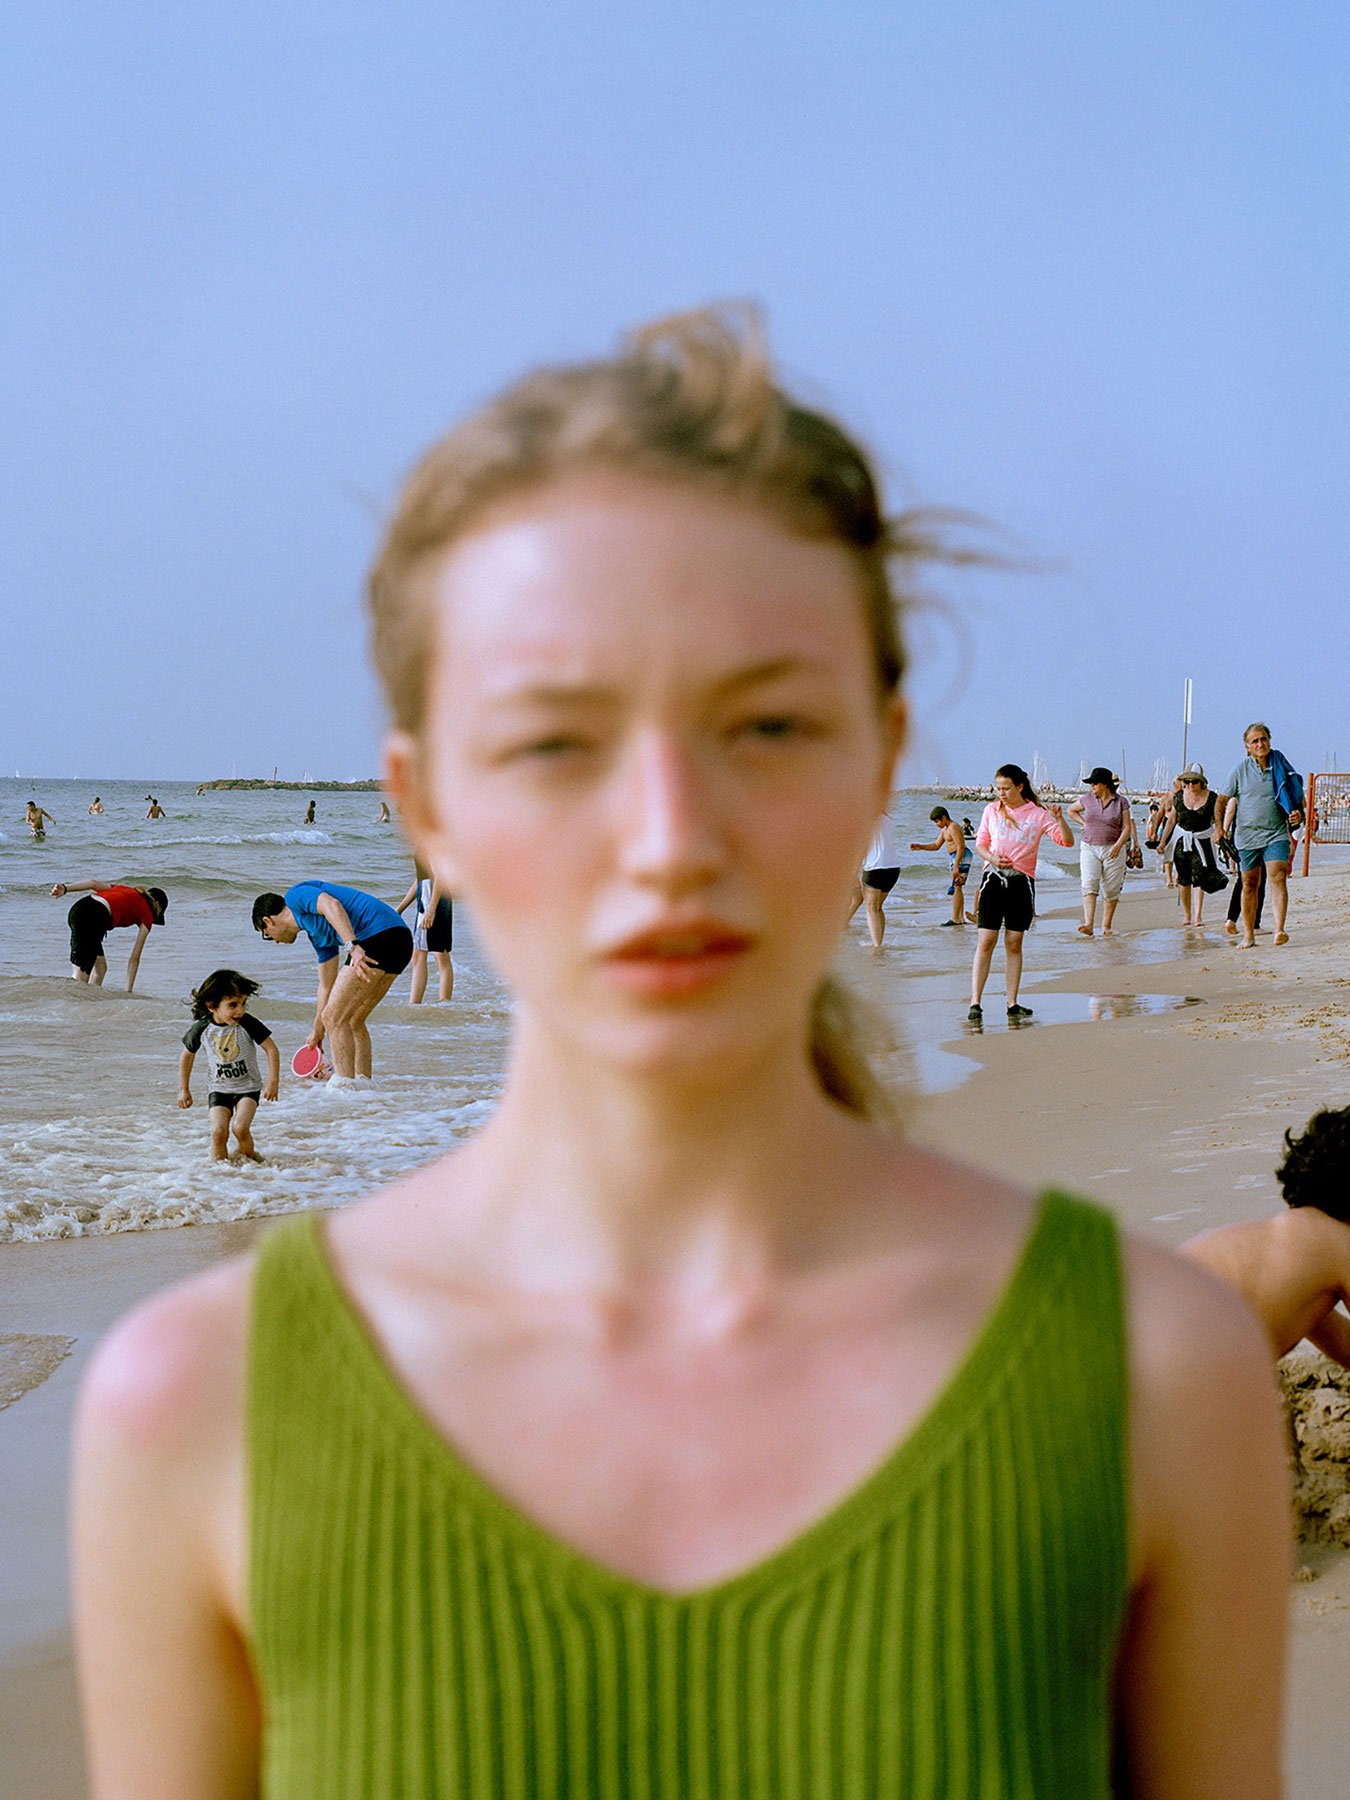 <p>Emmie America often works with fashion photography, but portraiture, movement and capturing each person's character is central to her practice. This photo was taken on a beach in Tel Aviv, reflecting its hectic surroundings in the blazing sun. </p>